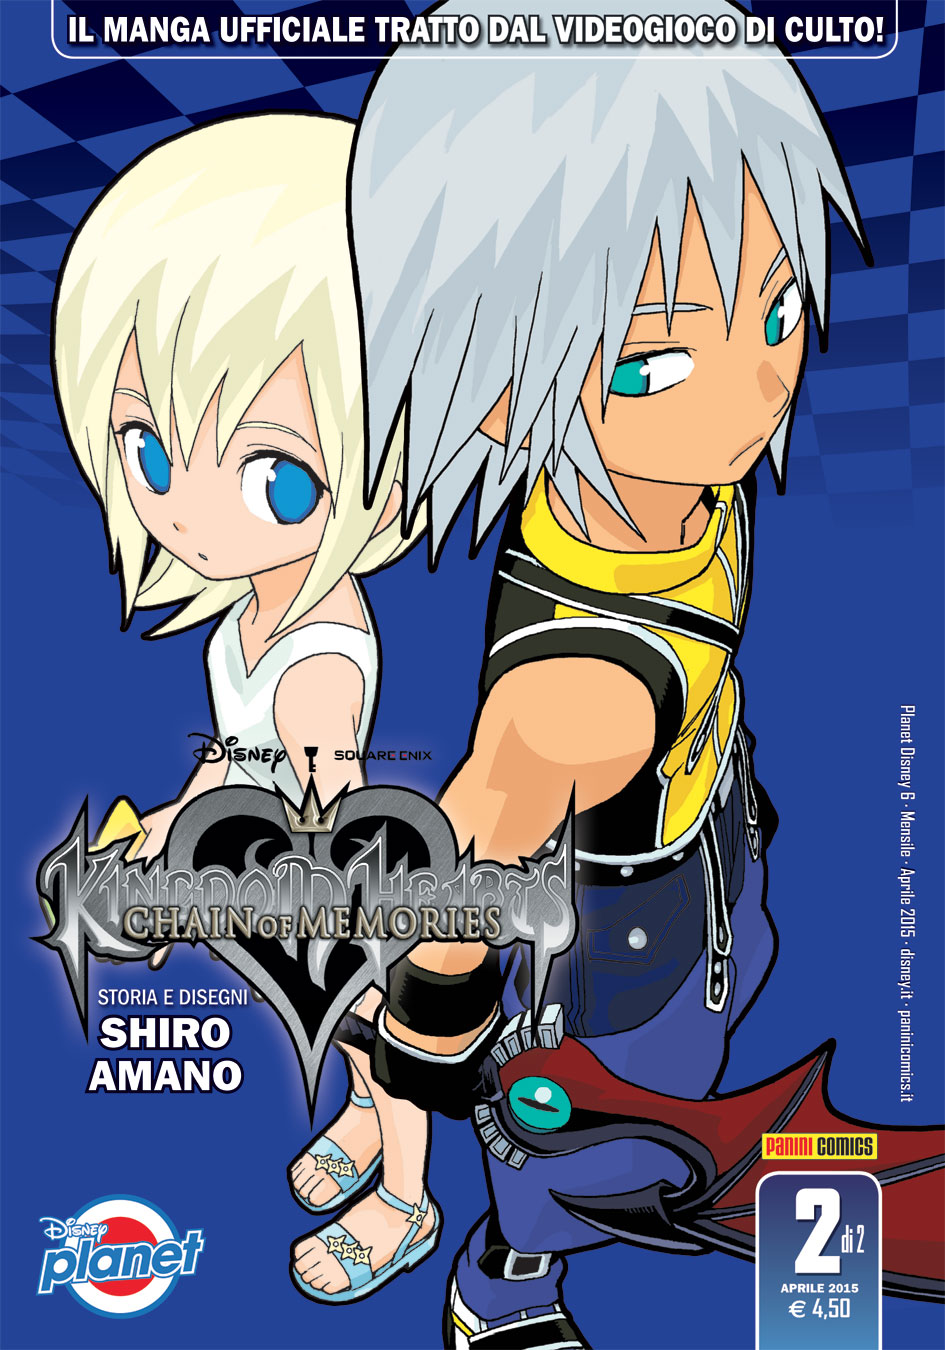 Cover Disney Planet 6 - Kingdom Hearts - Chain of Memories 2 di 2